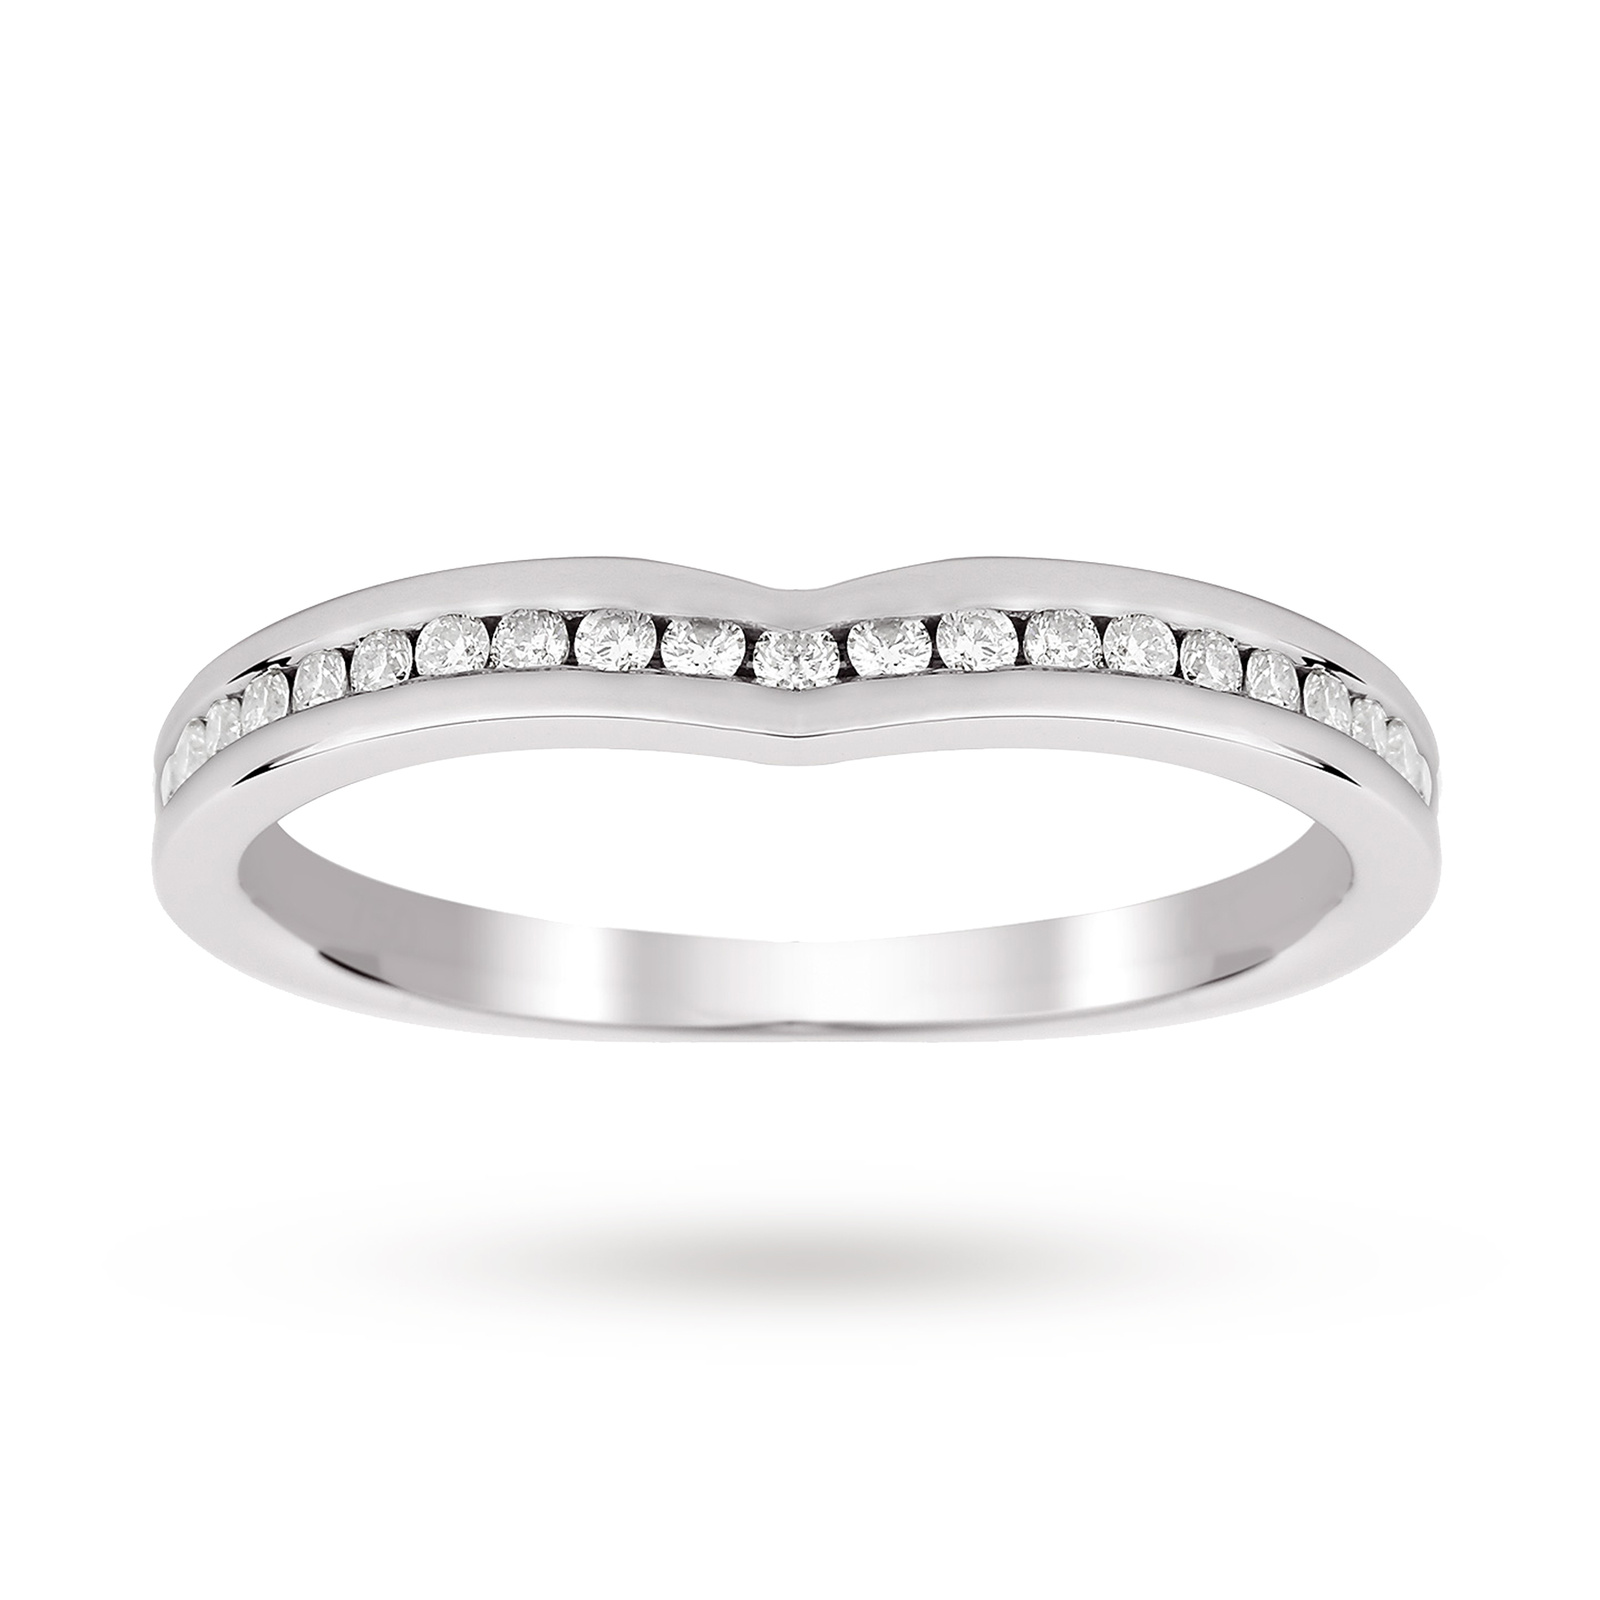 pear platinum ring goldsmiths engagement shaped mccaul collection with forged diamond twist rings